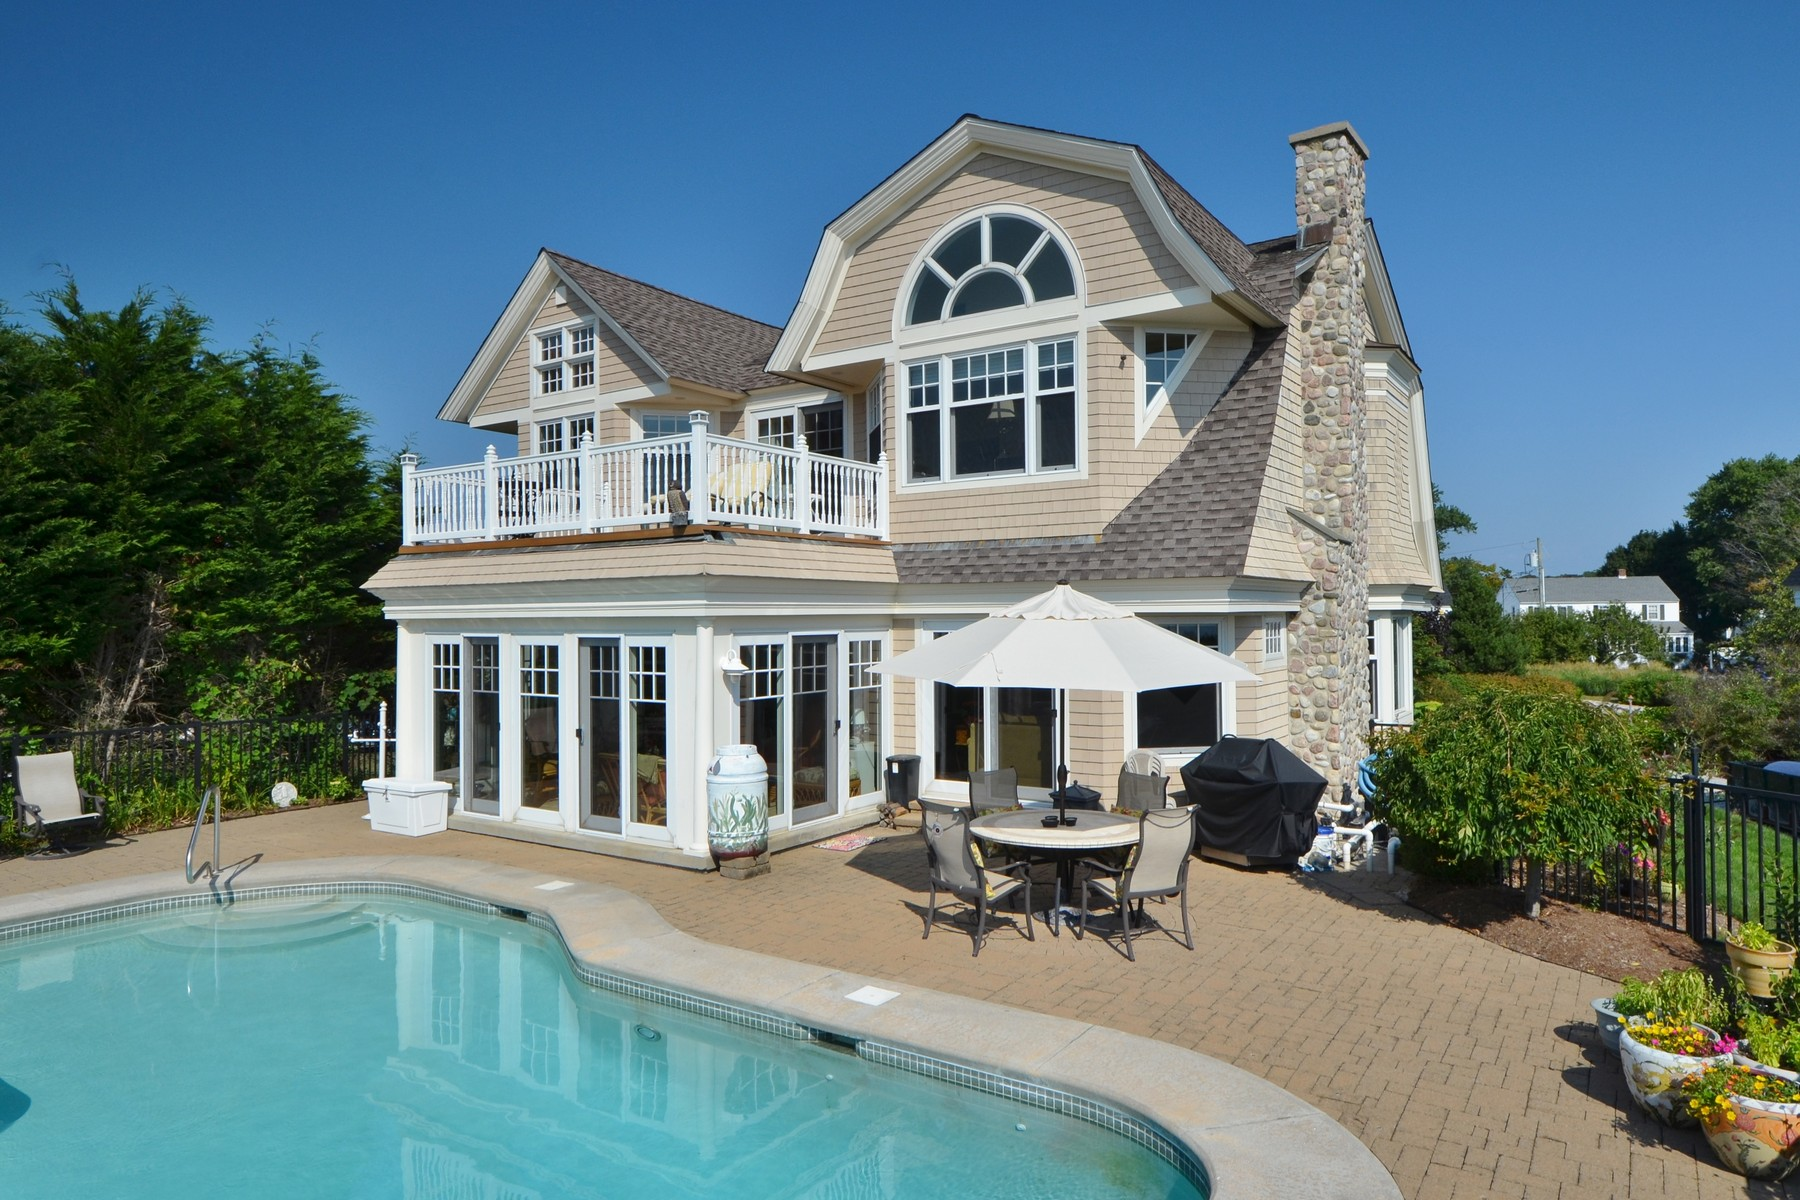 Moradia para Venda às Stunning Direct Waterfront Home 10 Billow Rd Old Saybrook, Connecticut, 06475 Estados Unidos